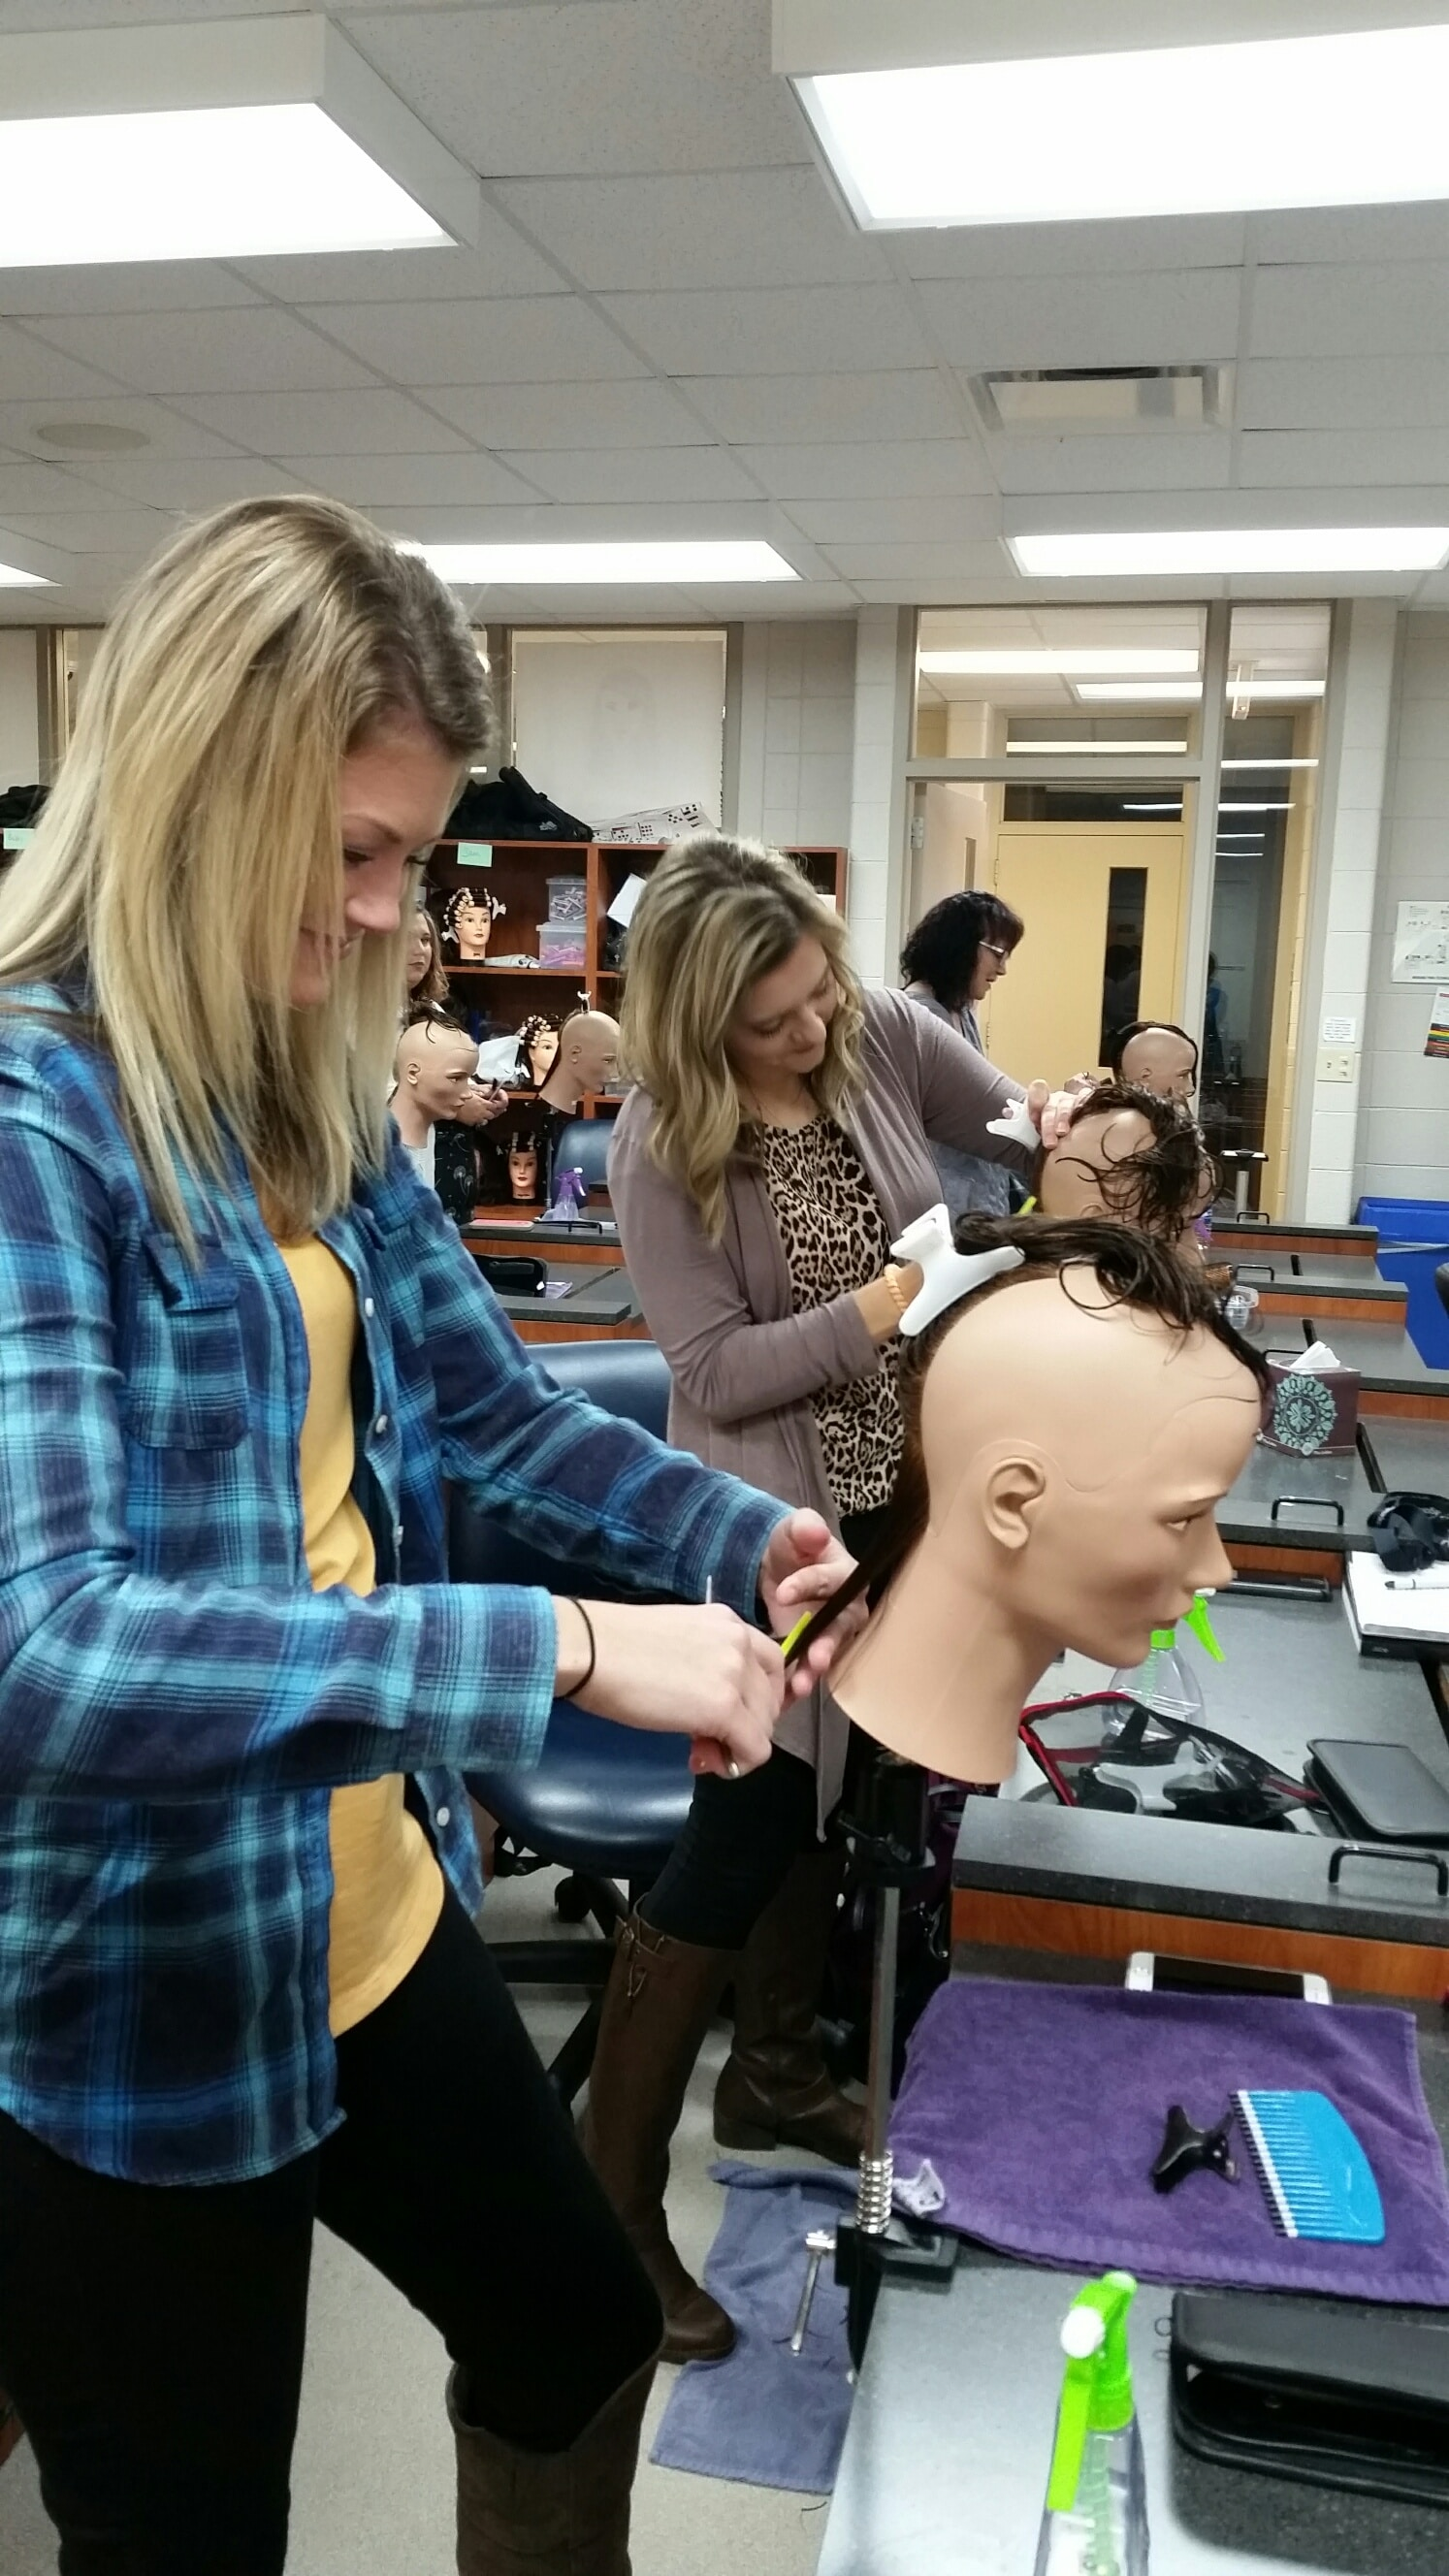 female student giving mannequin a haircut